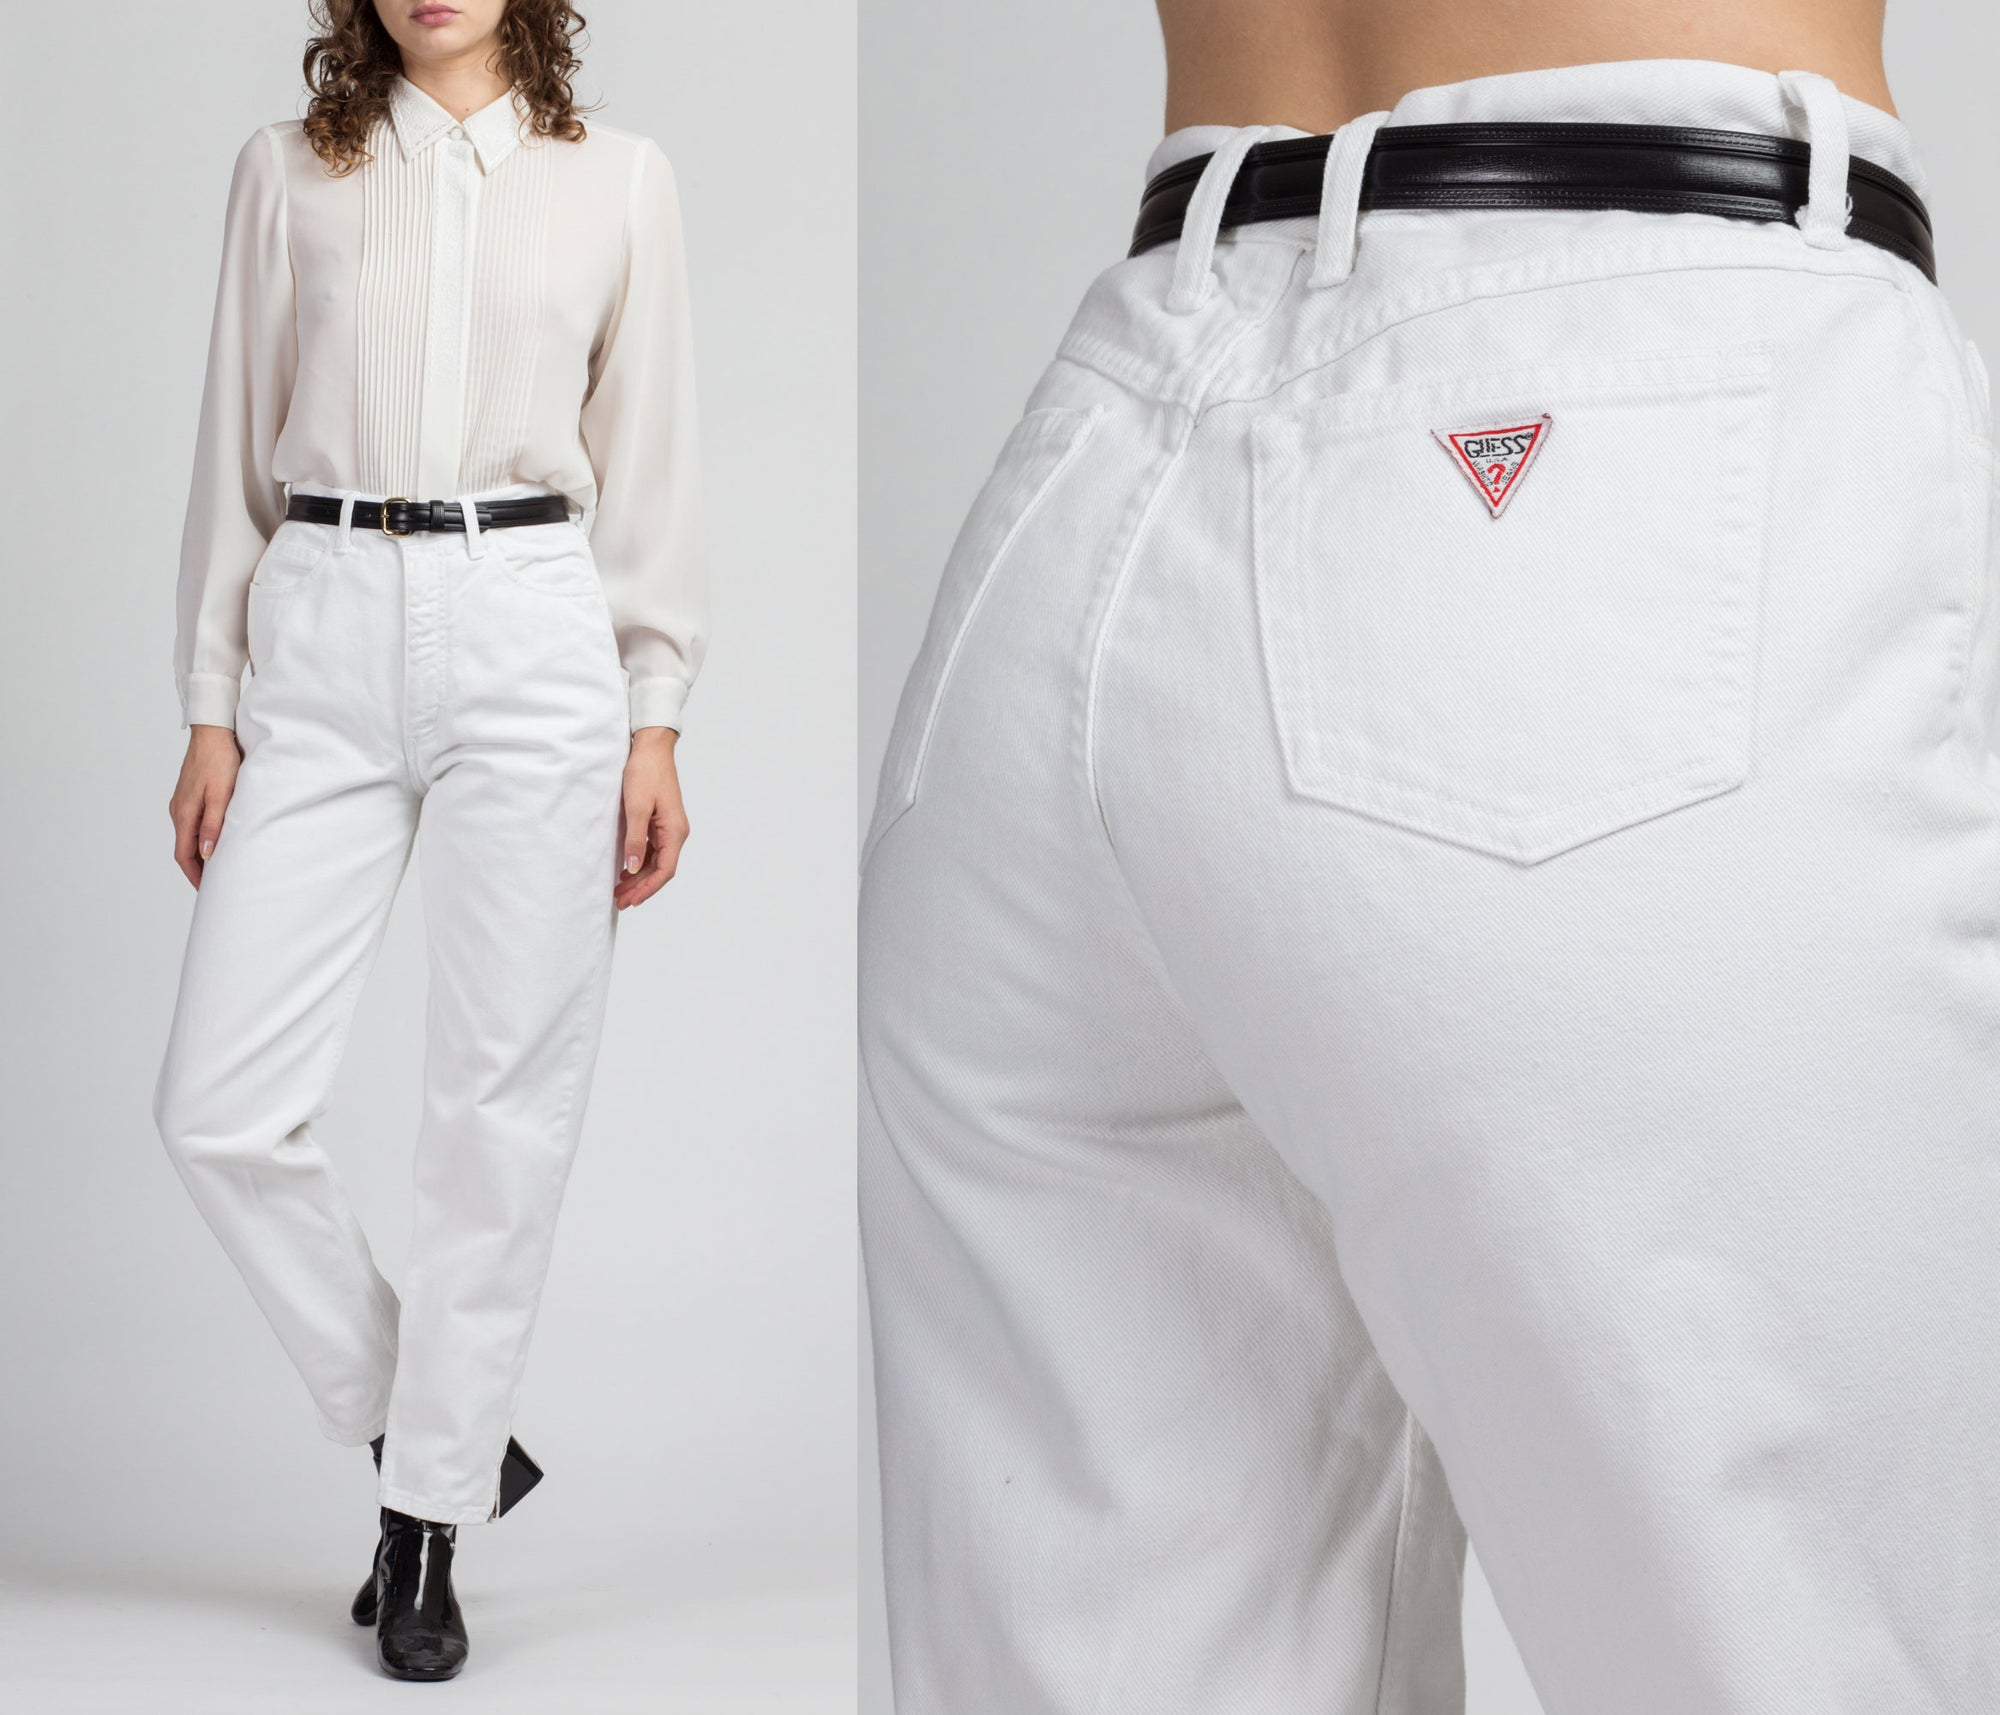 Vintage High Waist White Guess Jeans - Medium, 29""